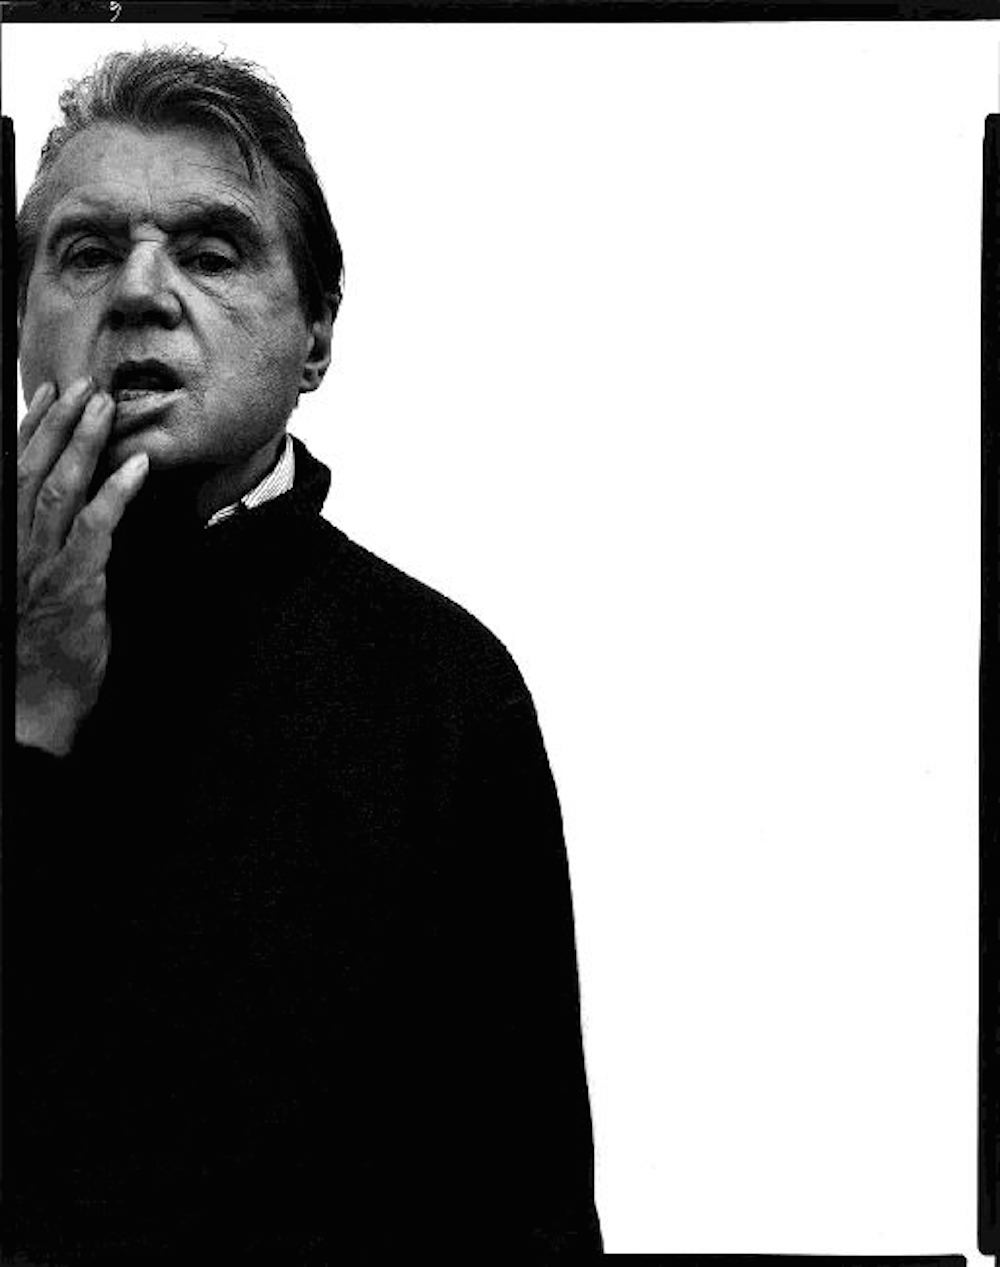 Francis Bacon, artist, Paris, April 11, 1979